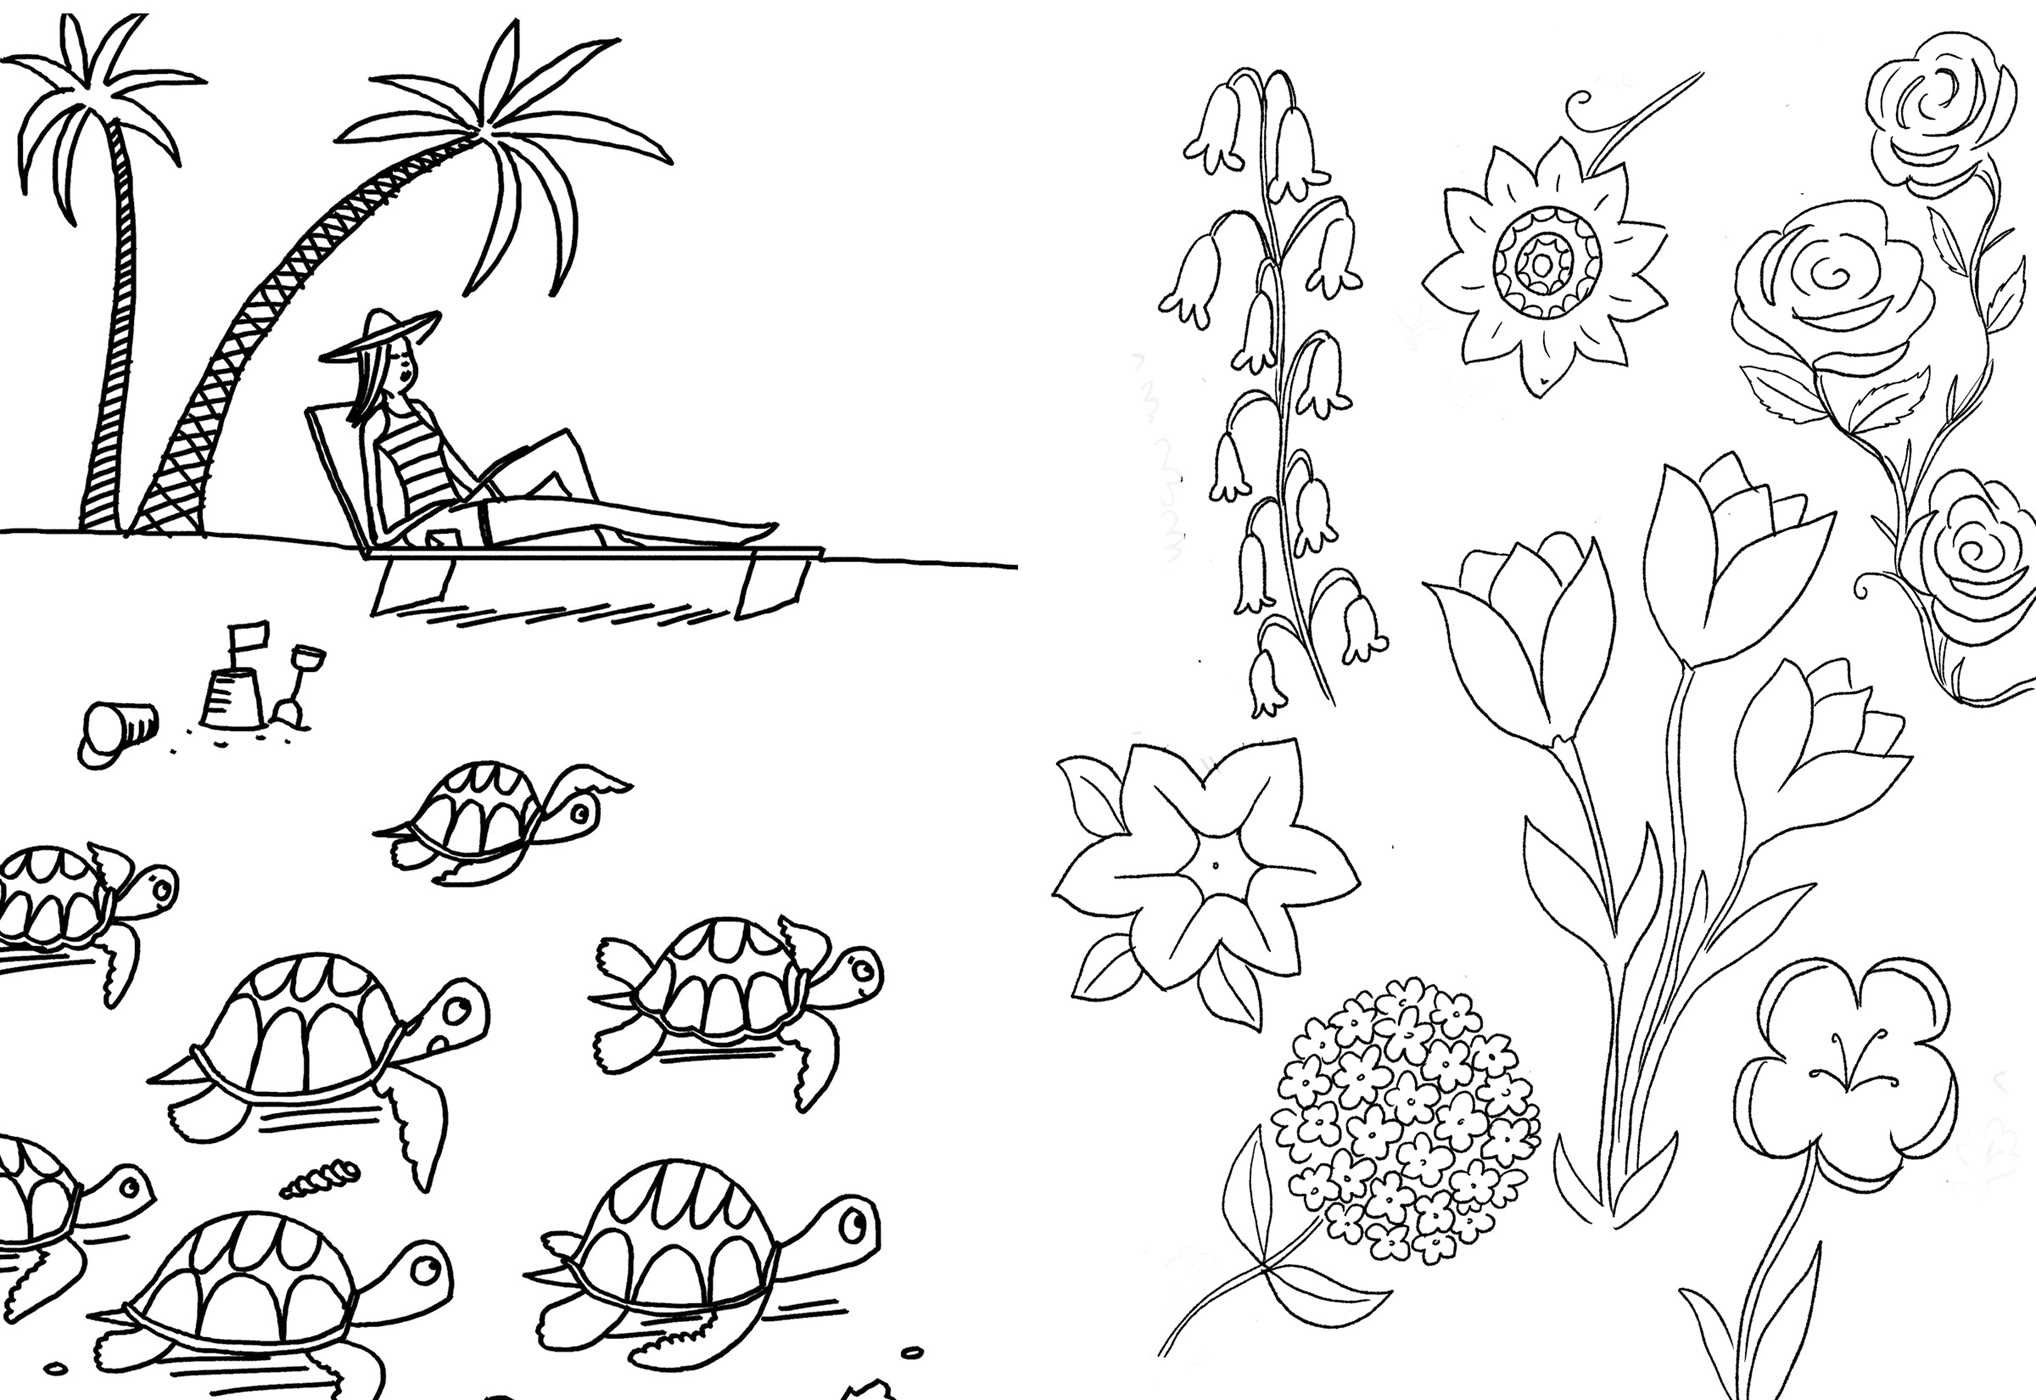 Dream doodle draw travel set 9781481491976.in03